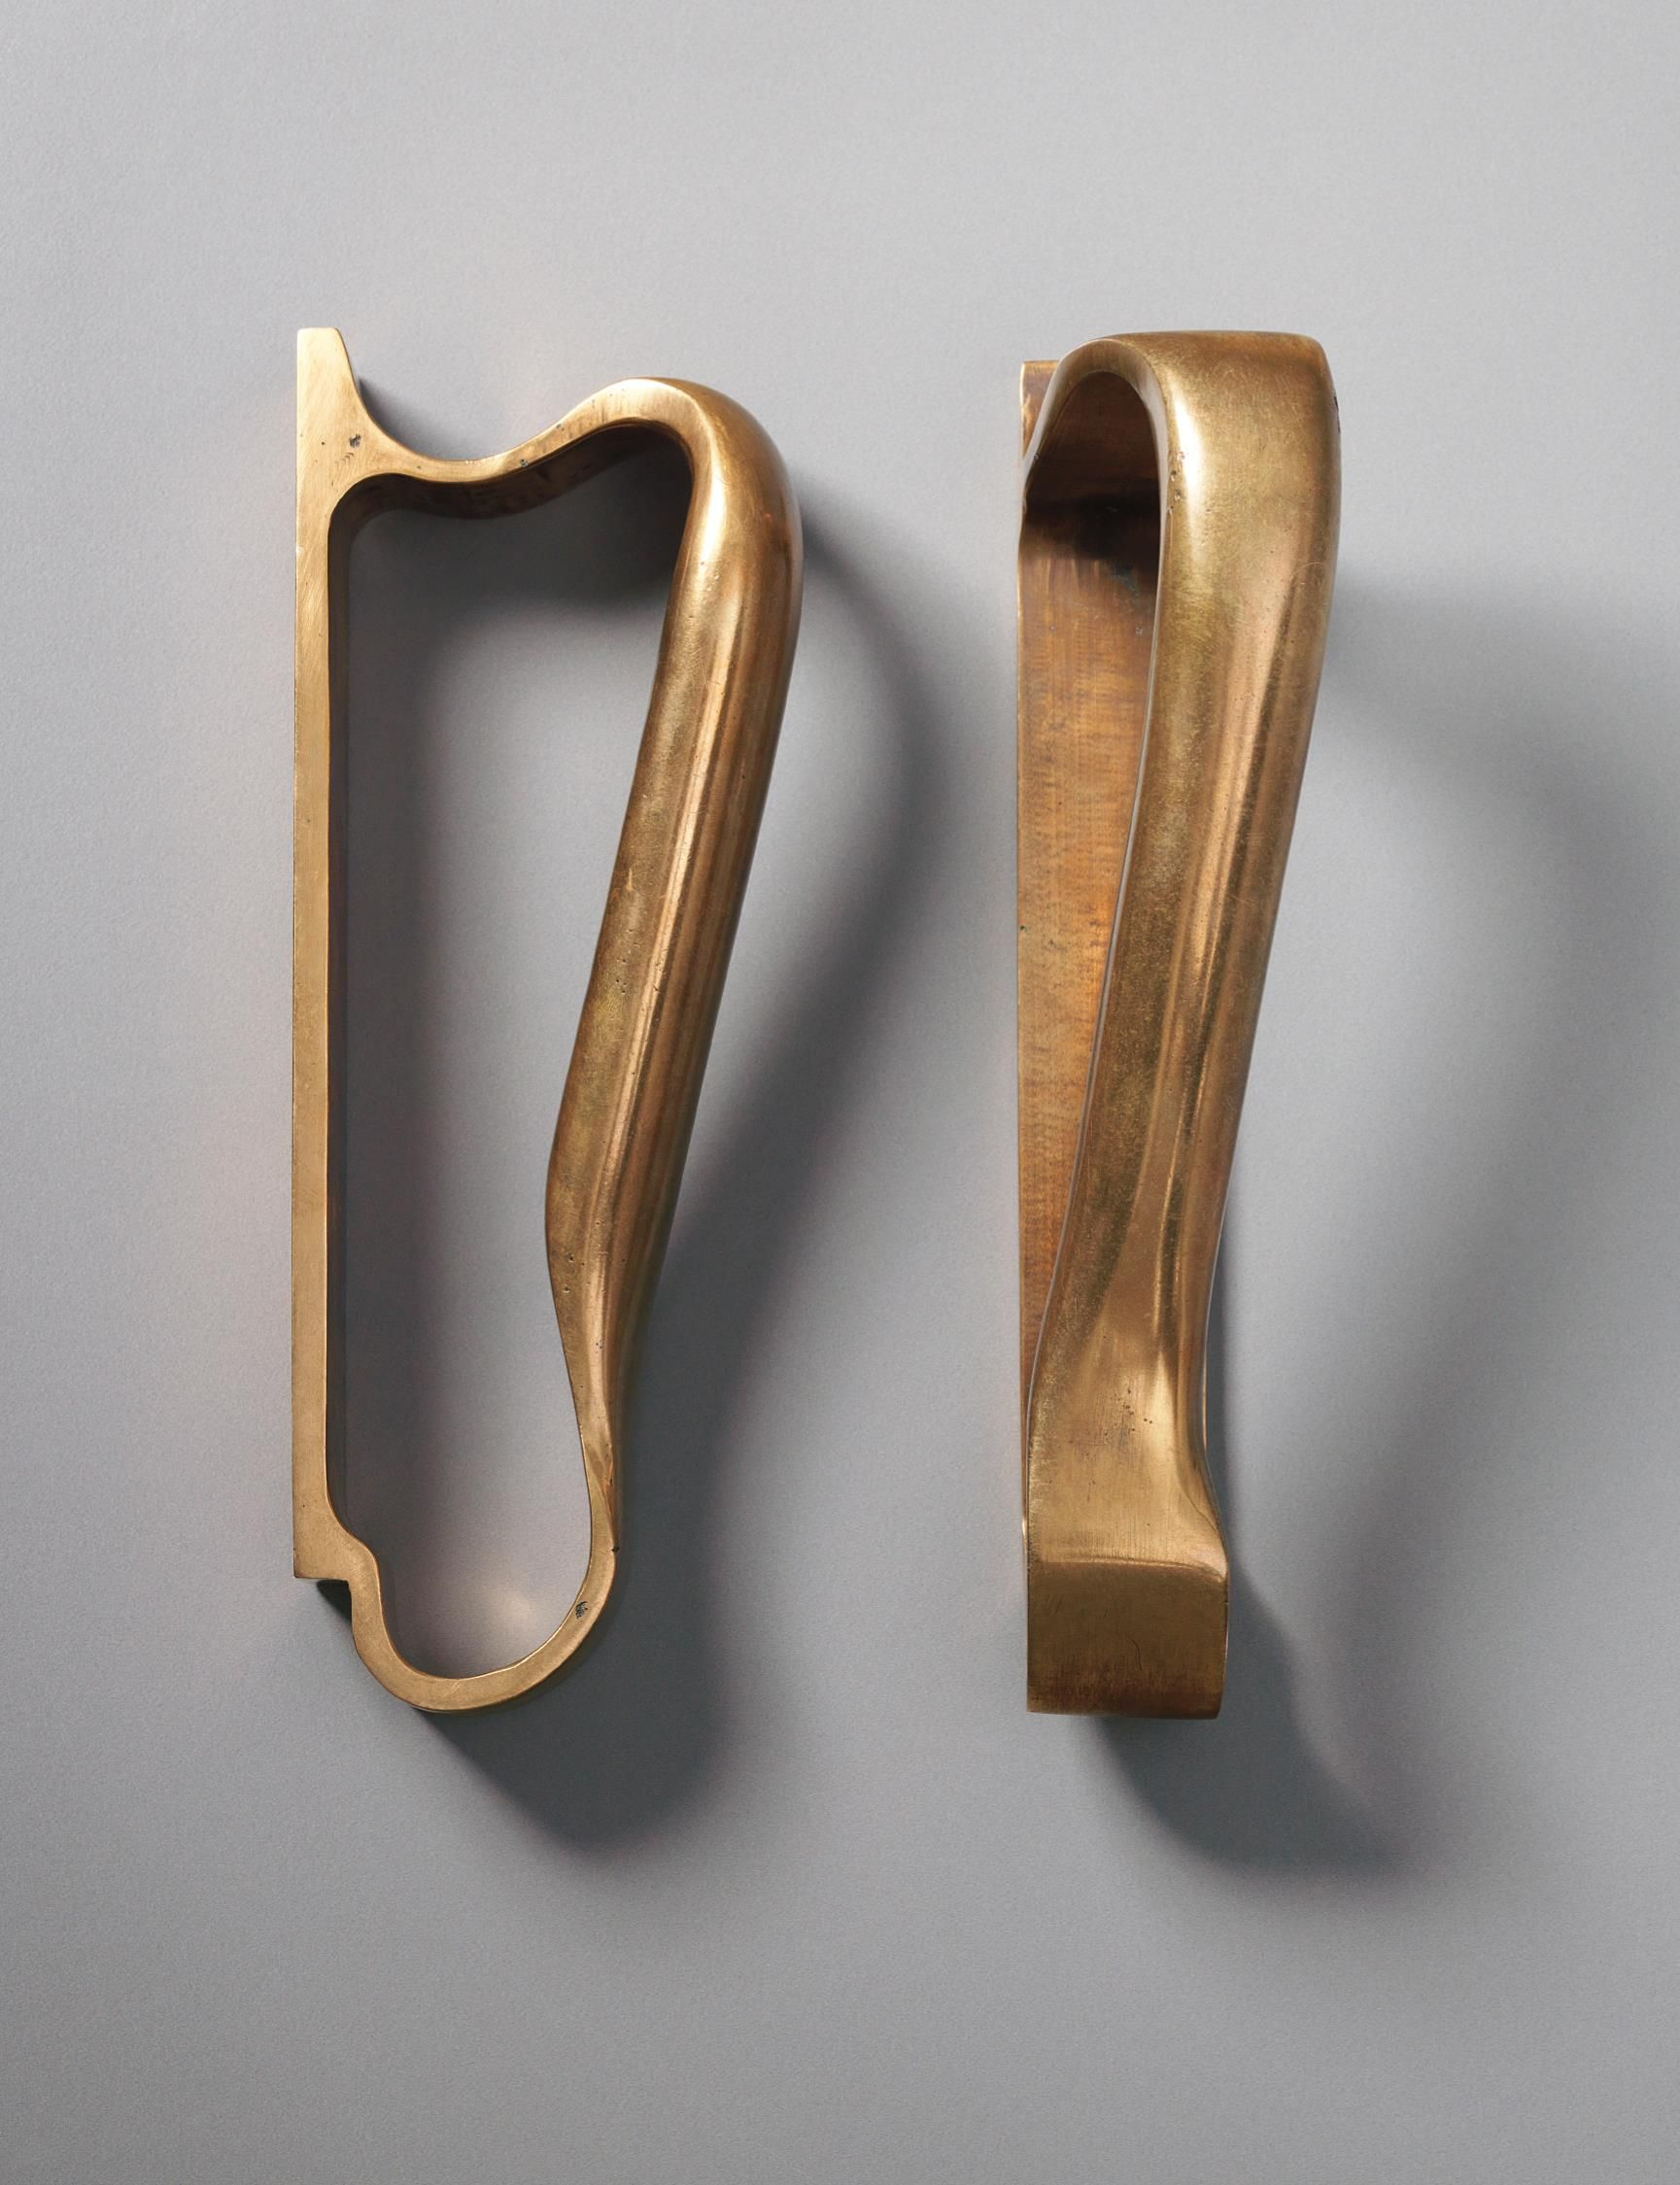 Phillips Uk050214 Alvar Aalto Pair Of Door Handles Bronze Door Handle Brass Door Handles Door Handles